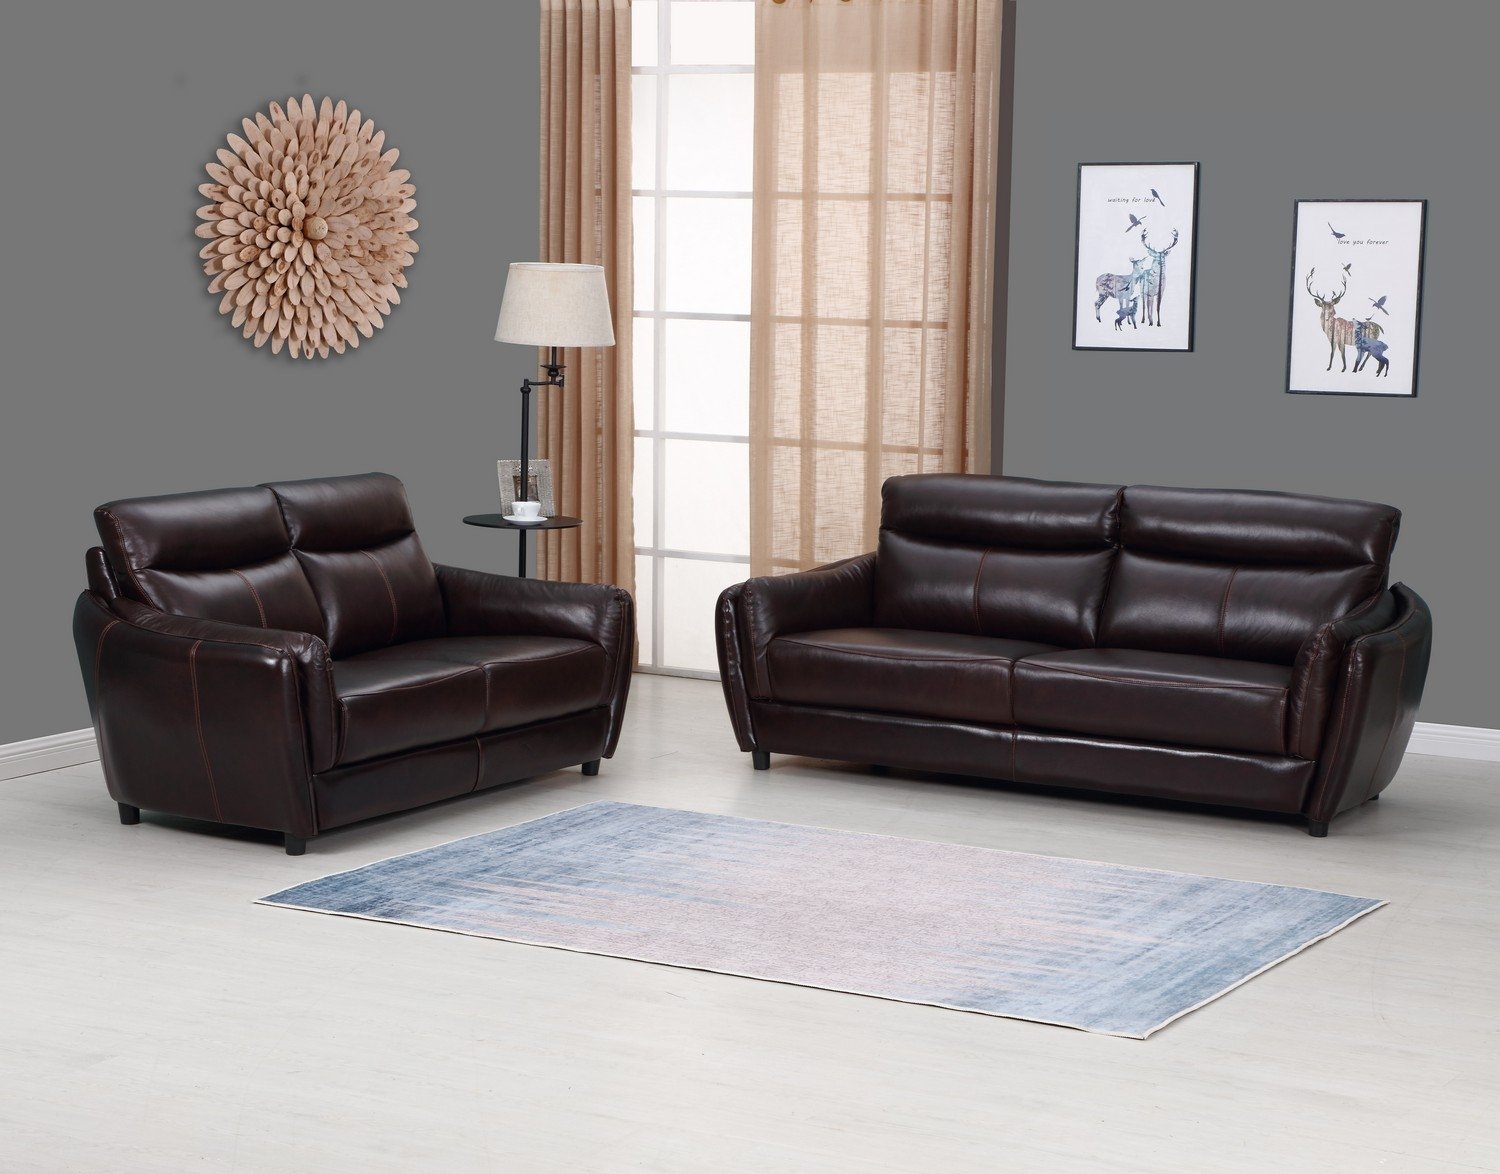 Admirable 68 X 36 X 35 Modern Brown Leather Sofa And Loveseat Bralicious Painted Fabric Chair Ideas Braliciousco